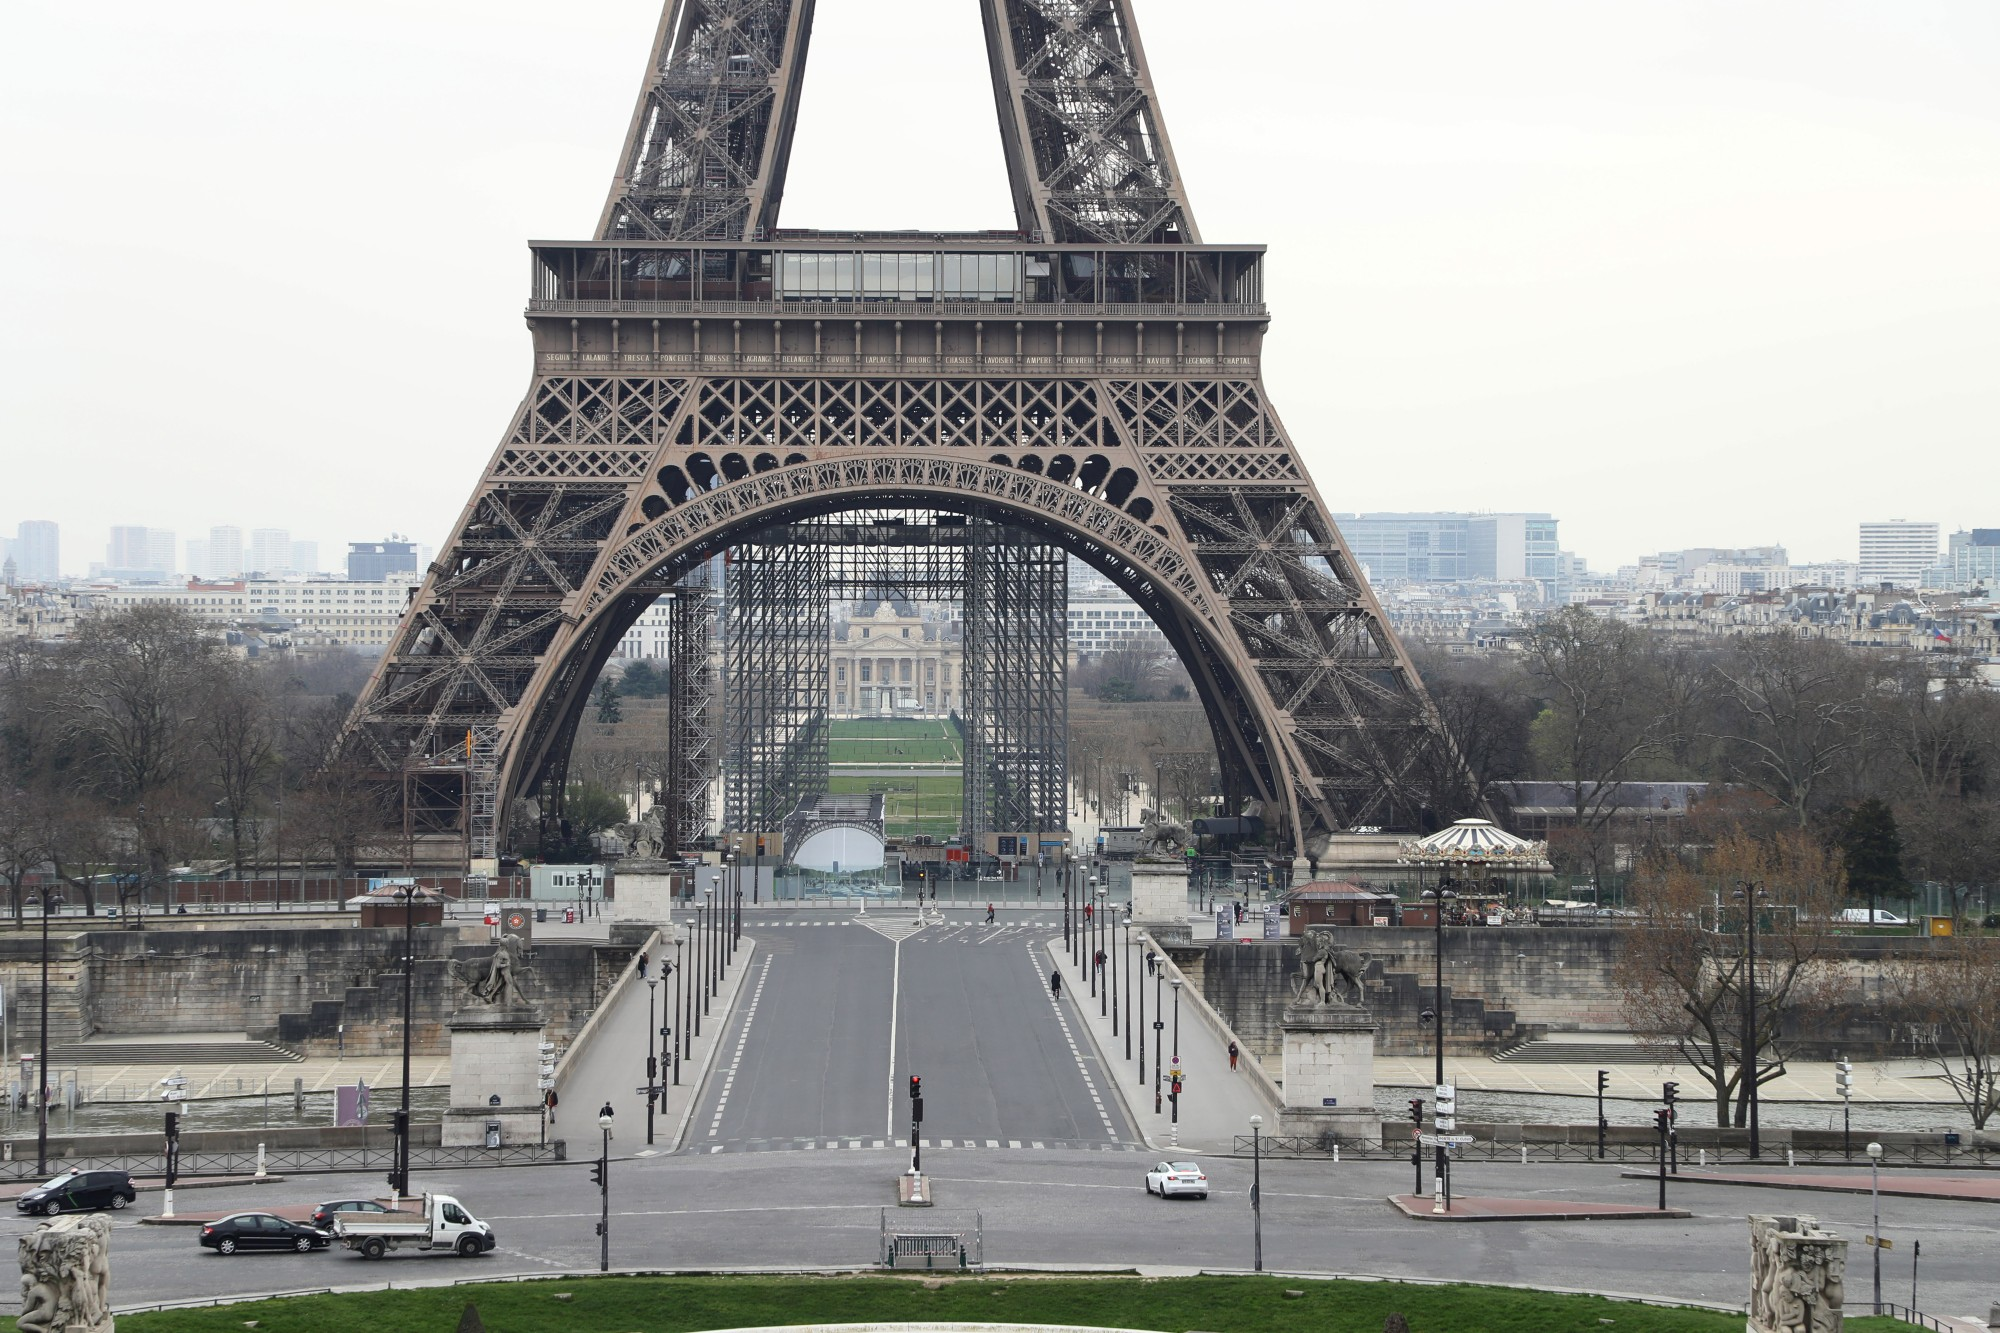 Eiffel tower : how the top moves during heatwaves